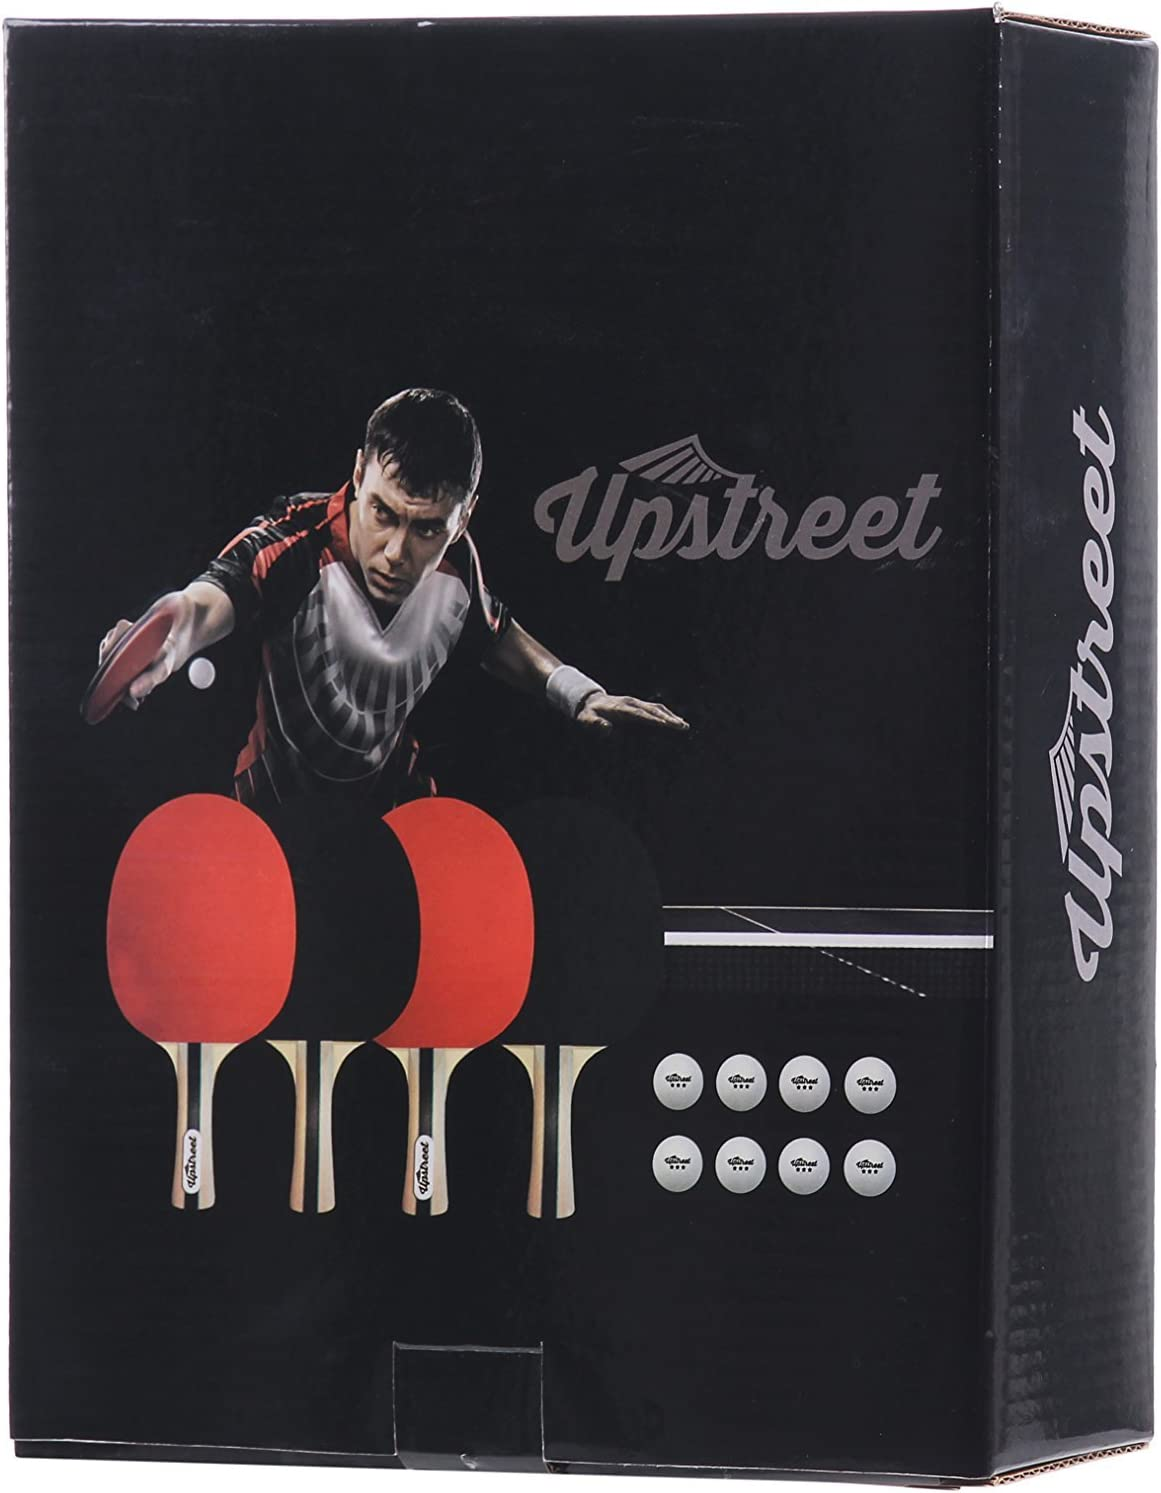 Upstreet The Box Set: 4 Ping Pong Paddles with 3 Star Ping Pong Balls for Table Tennis : Sports & Outdoors